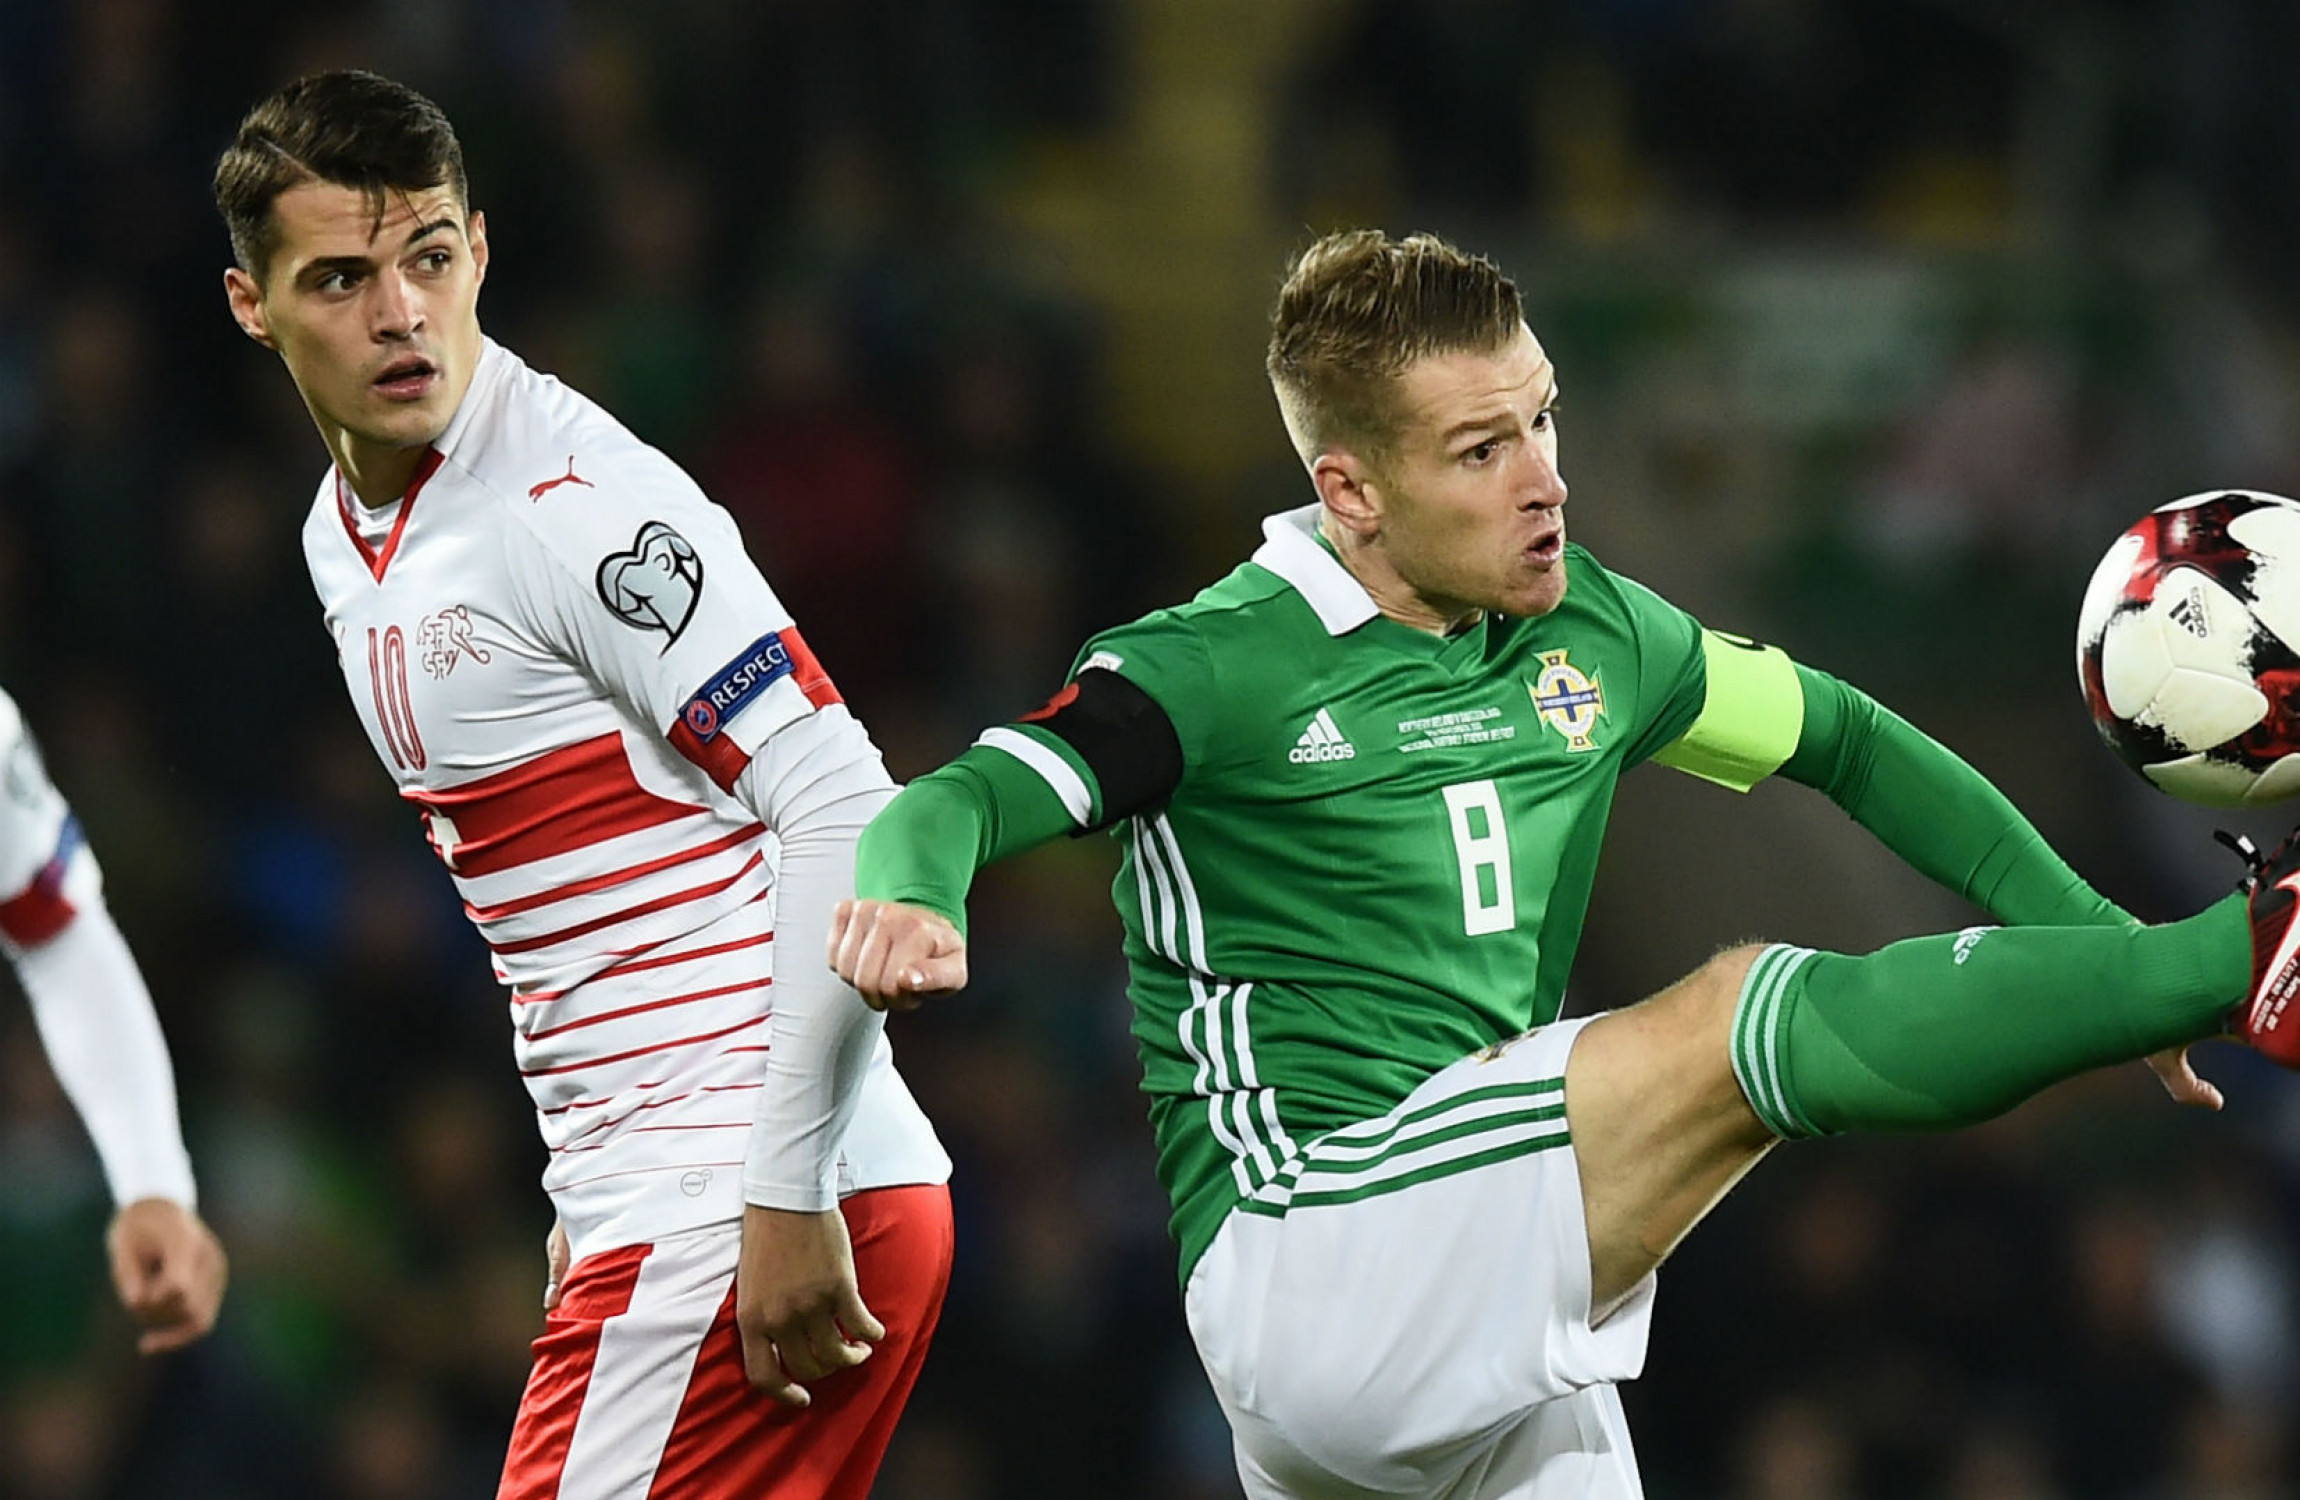 Agony for Northern Ireland as first-leg penalty proves decisive